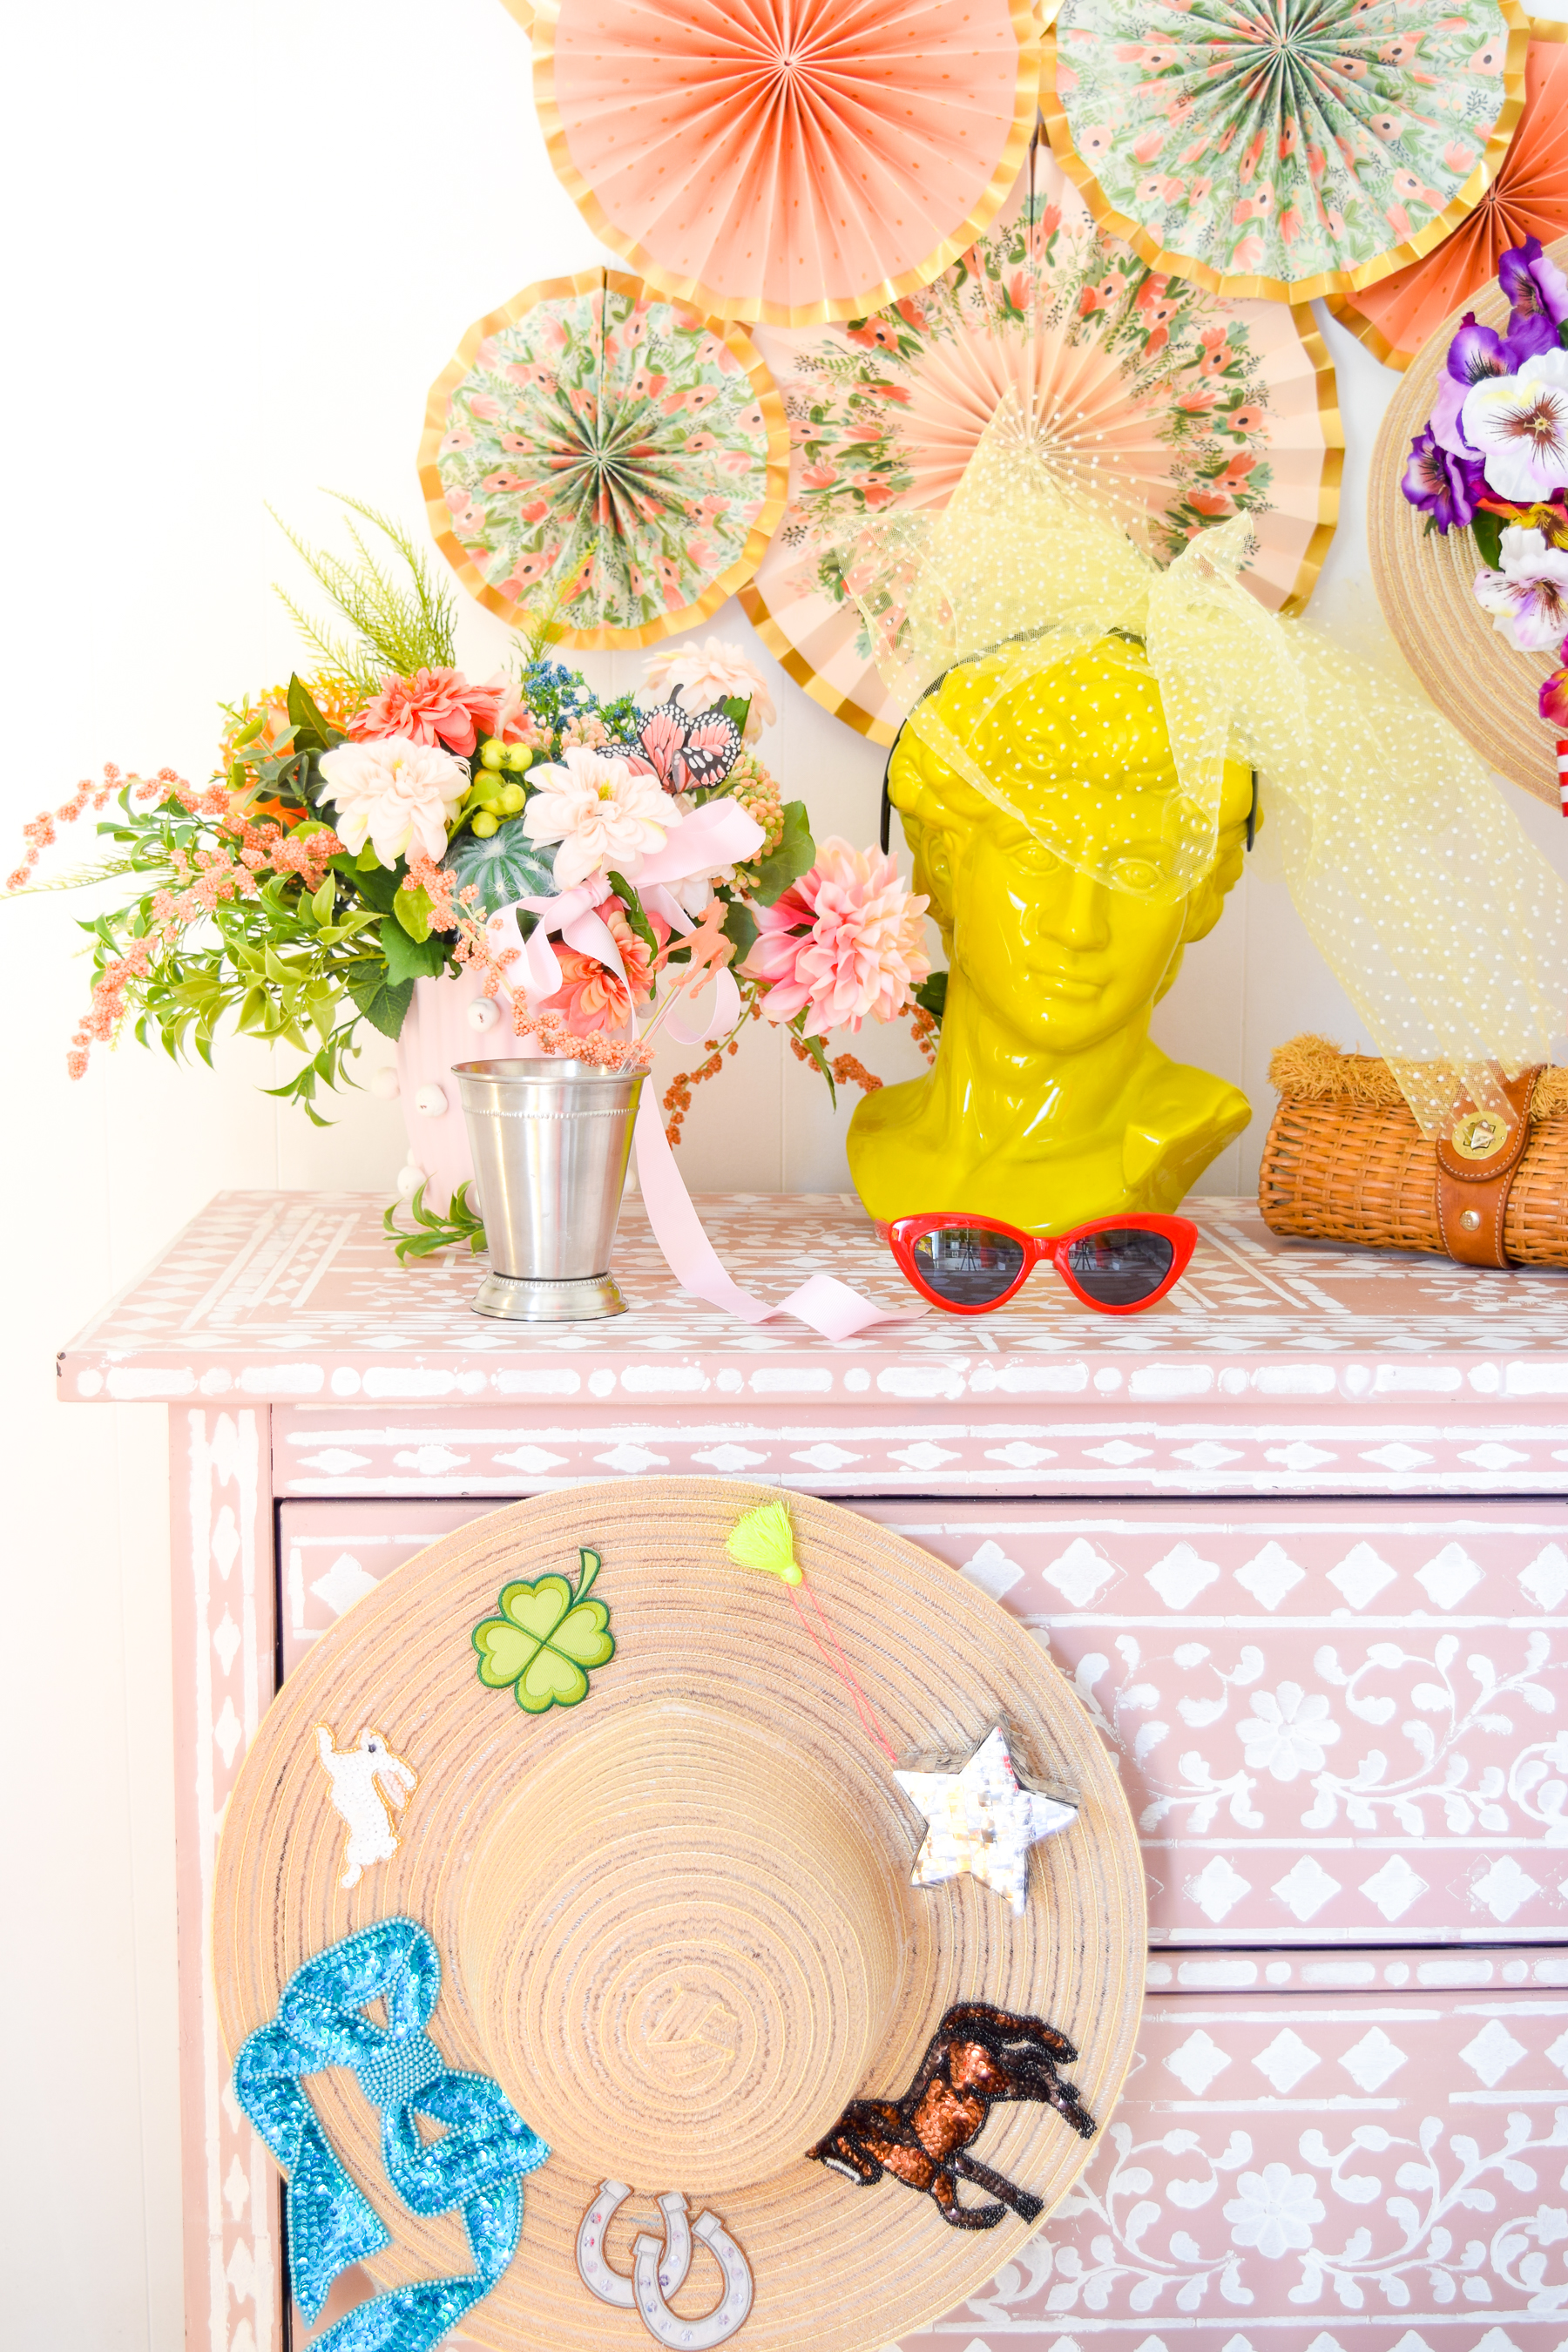 What's a Derby Day party without some DIY Derby Hats & Fascinators! Made using craft supplies and appliques, you can easily make your own.